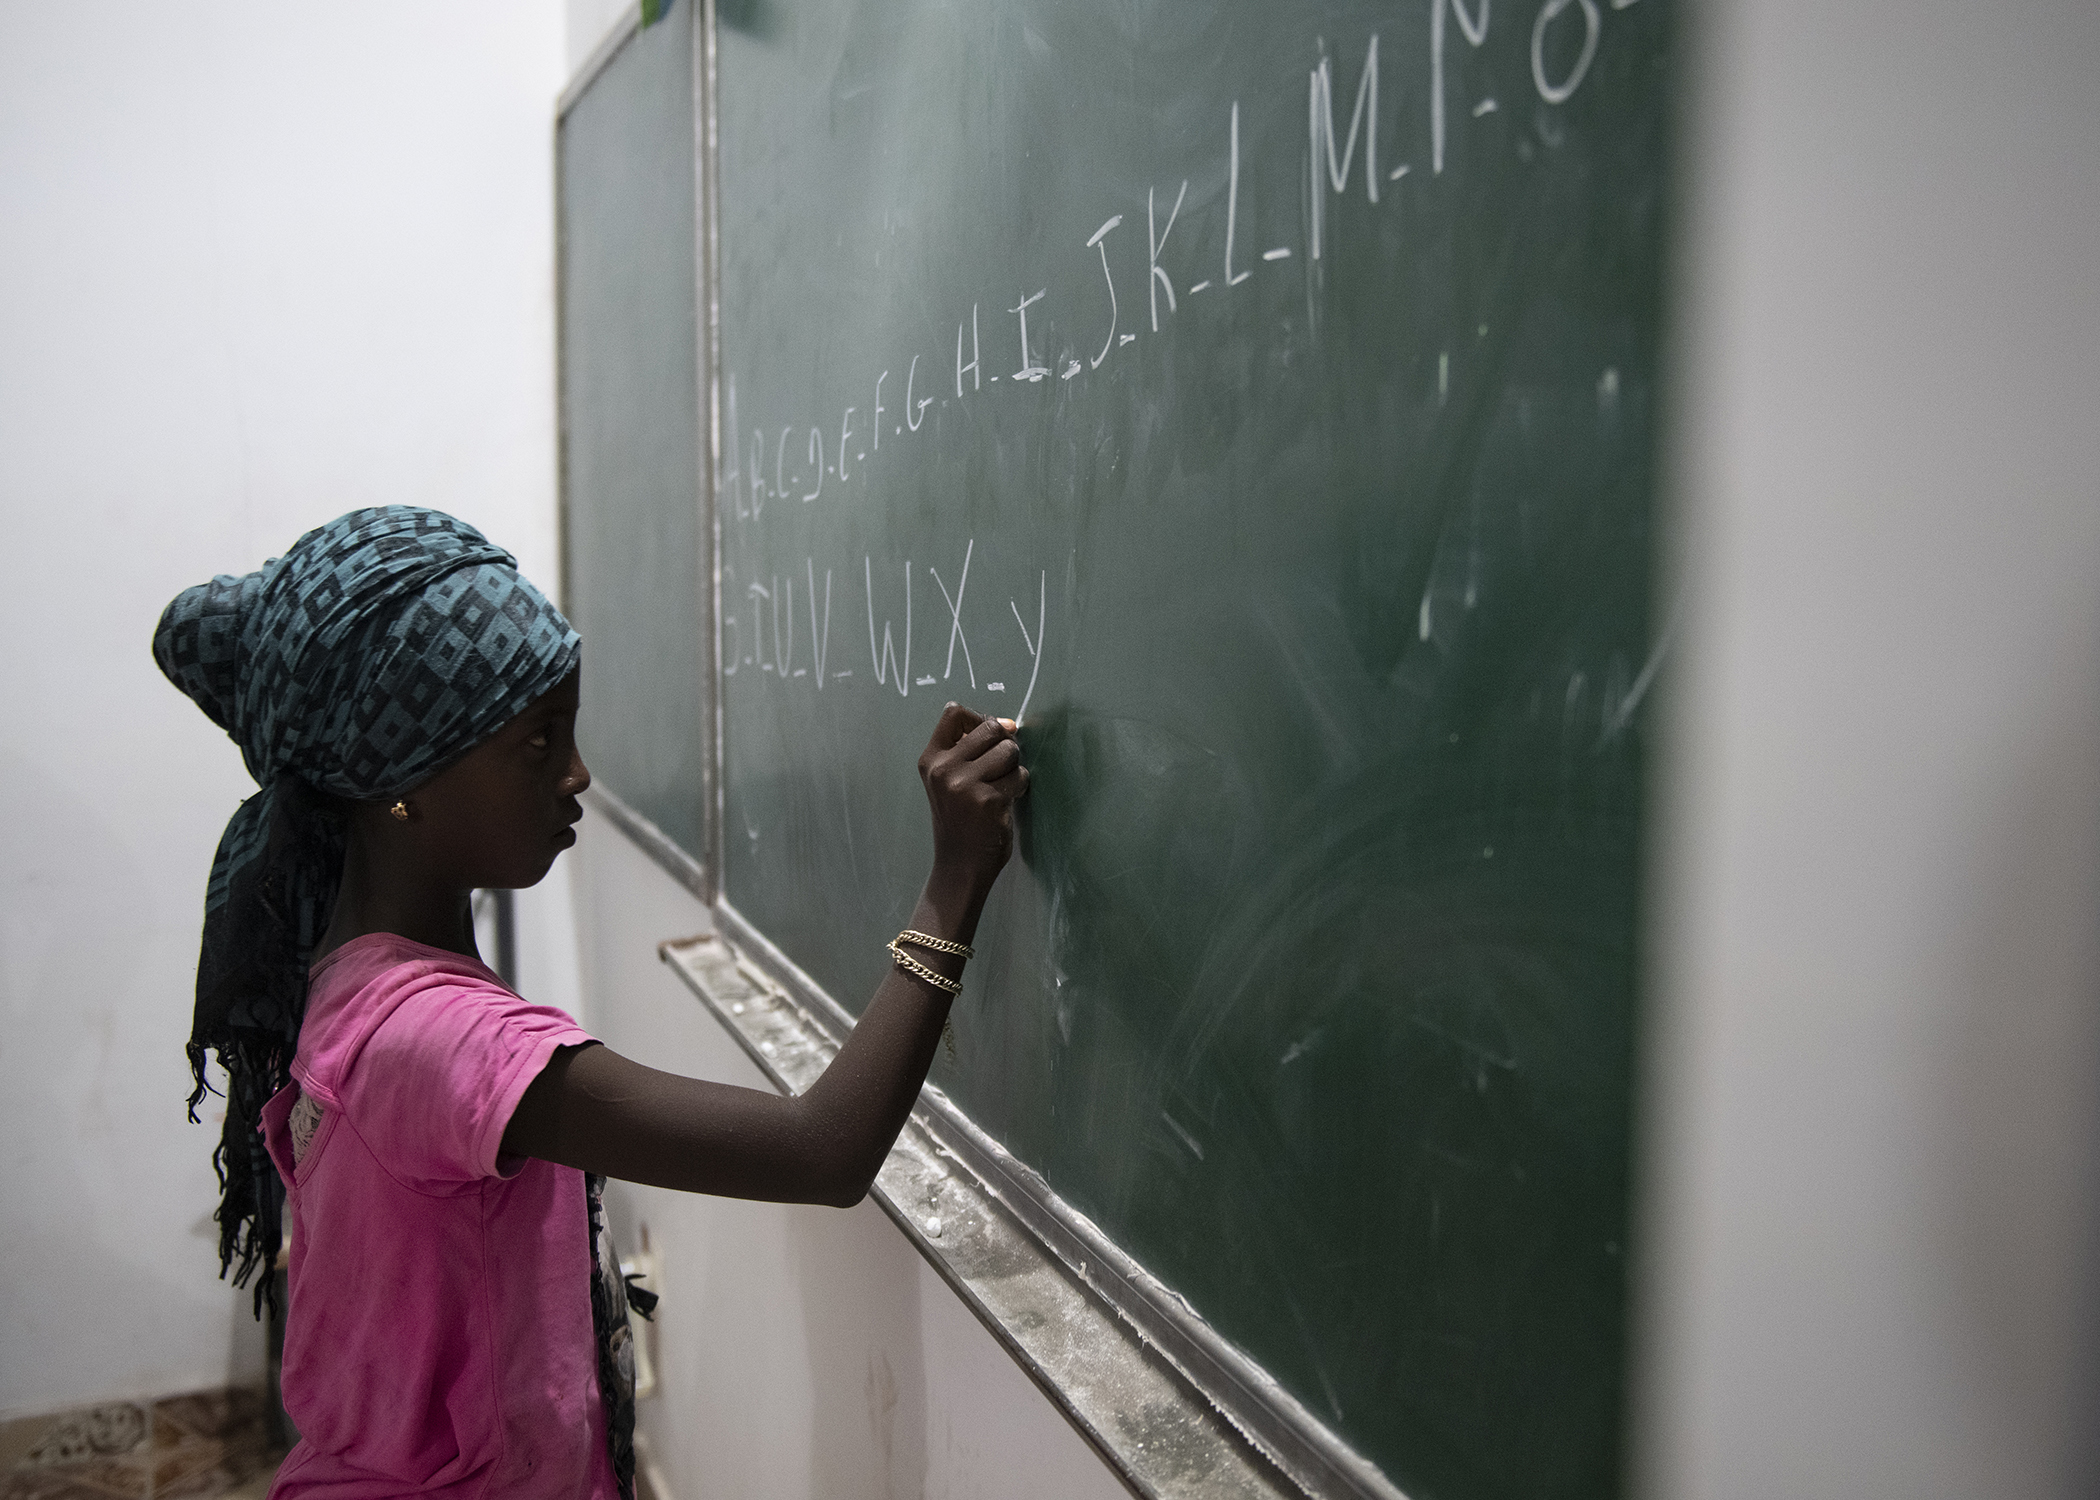 A child writes the alphabet during an English Discussion Group led by U.S. Army Soldiers from the 404th Civil Affairs Battalion, assigned to Combined Joint Task Force-Horn of Africa, in Tadjourah, Djibouti, Feb. 12, 2019. More than 90 Djiboutian youth and adults attended the group where students develop practical linguistic and rhetorical skills through conversation with English-speaking U.S. service members. (U.S. Air Force photo by Tech. Sgt. Shawn Nickel)